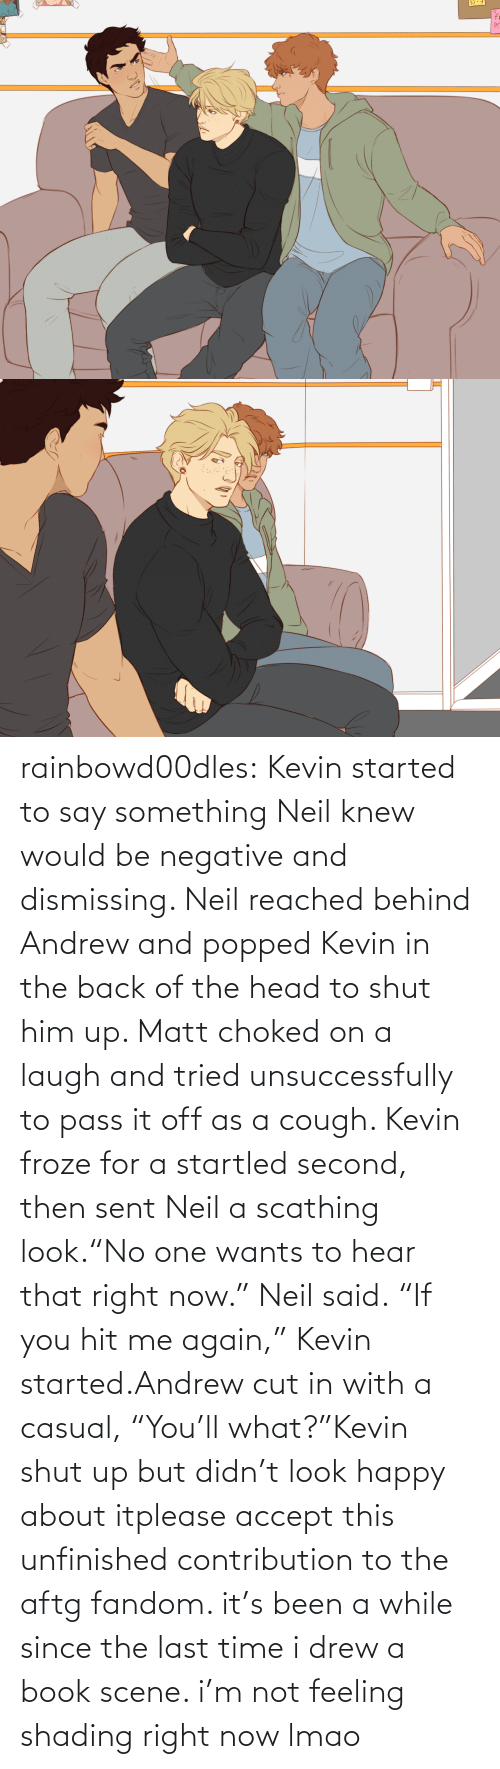 "drew: rainbowd00dles:  Kevin started to say something Neil knew would be negative and dismissing. Neil reached behind Andrew and popped Kevin in the back of the head to shut him up. Matt choked on a laugh and tried unsuccessfully to pass it off as a cough. Kevin froze for a startled second, then sent Neil a scathing look.""No one wants to hear that right now."" Neil said. ""If you hit me again,"" Kevin started.Andrew cut in with a casual, ""You'll what?""Kevin shut up but didn't look happy about itplease accept this unfinished contribution to the aftg fandom. it's been a while since the last time i drew a book scene. i'm not feeling shading right now lmao"